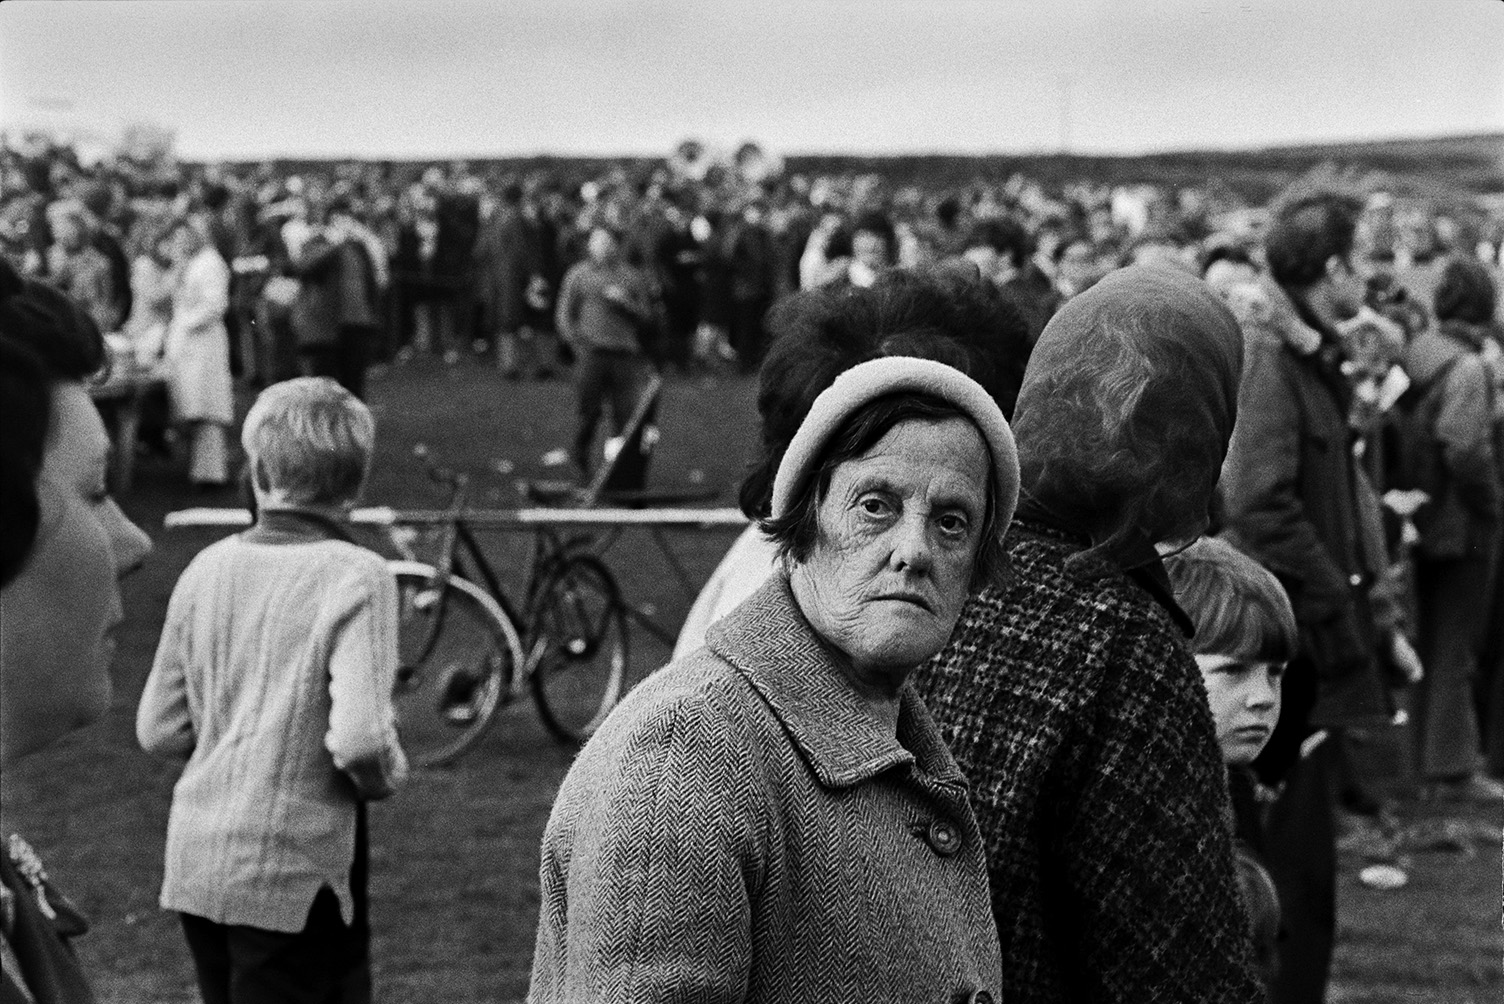 Spectators, including men, women and children, at'Man Powered Flight' competition in a field at Crowbeare. A woman is looking over her shoulder in the foreground.